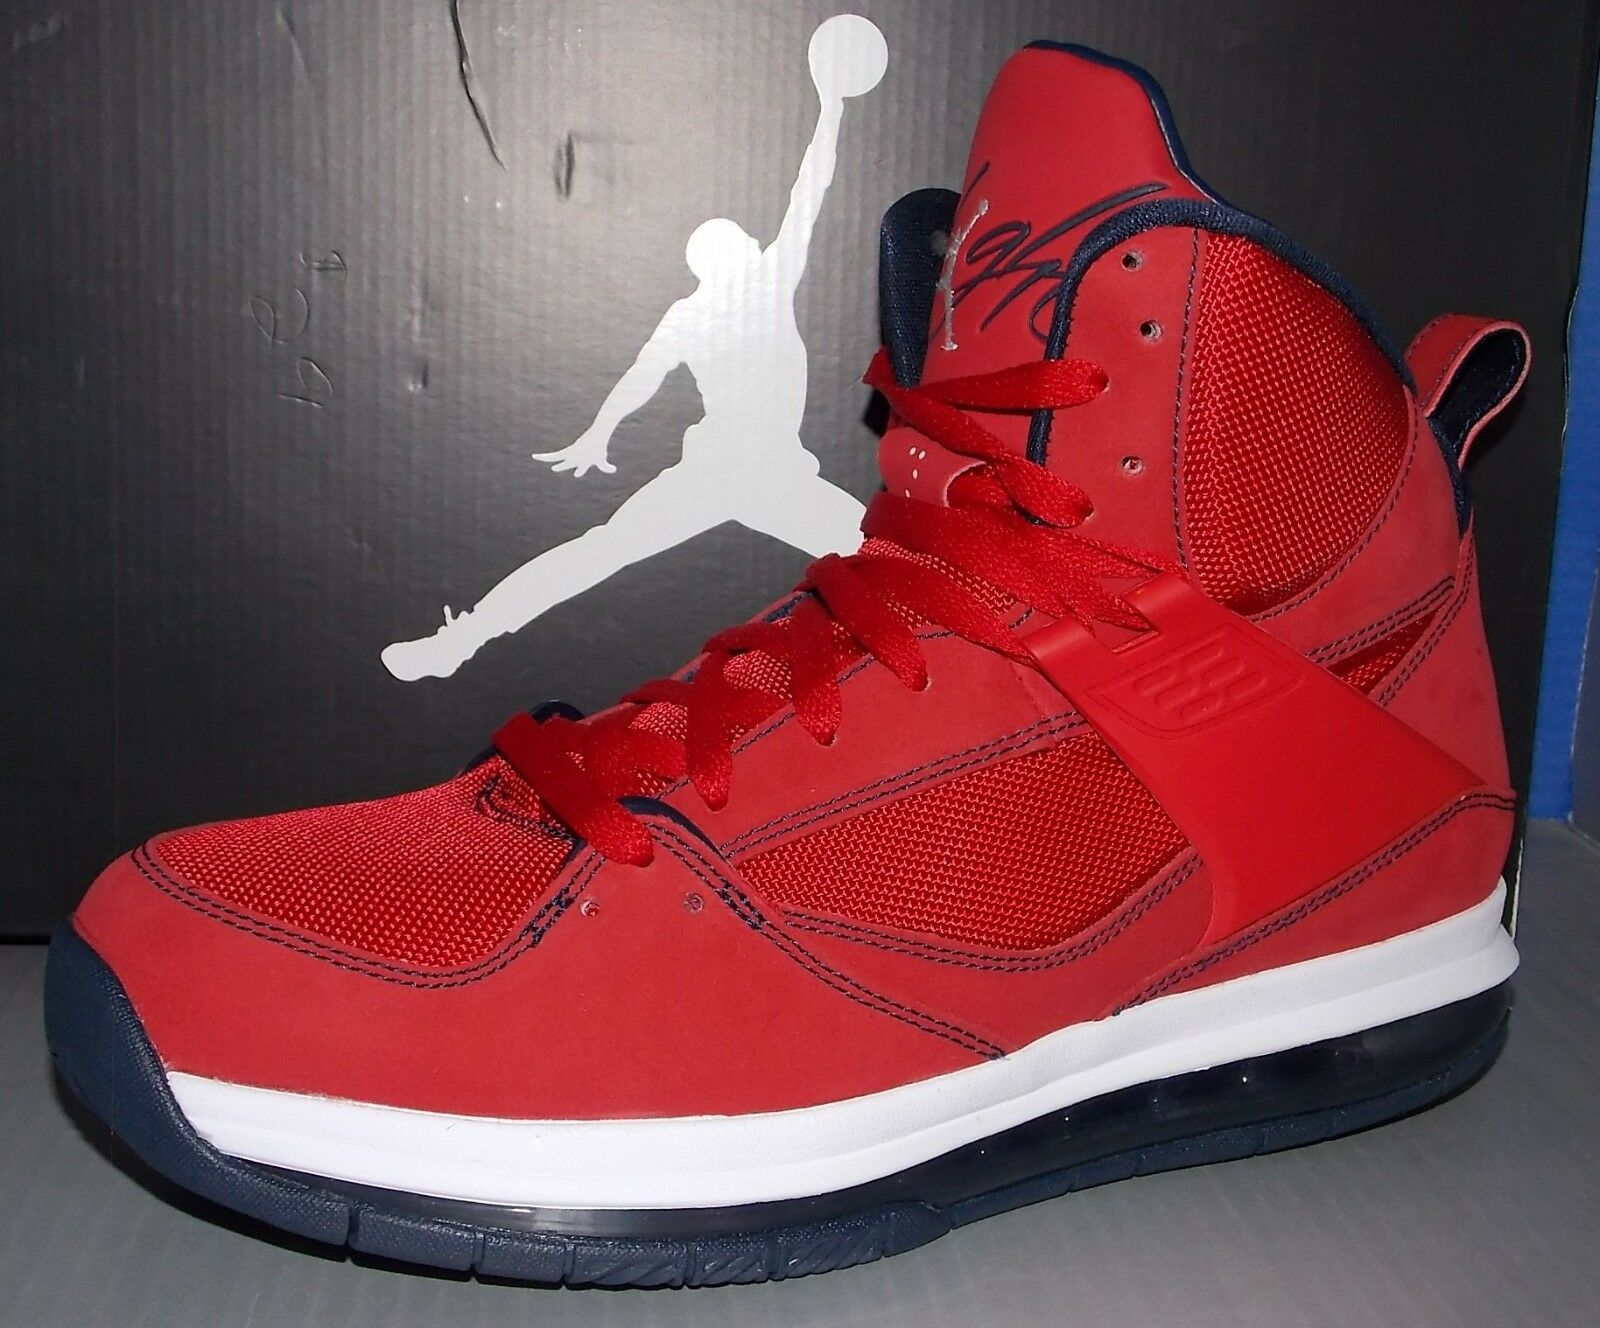 MENS NIKE JORDAN FLIGHT 45 HIGH MAX GYM RED / OBSIDIAN / WHITE SIZE 9 The most popular shoes for men and women